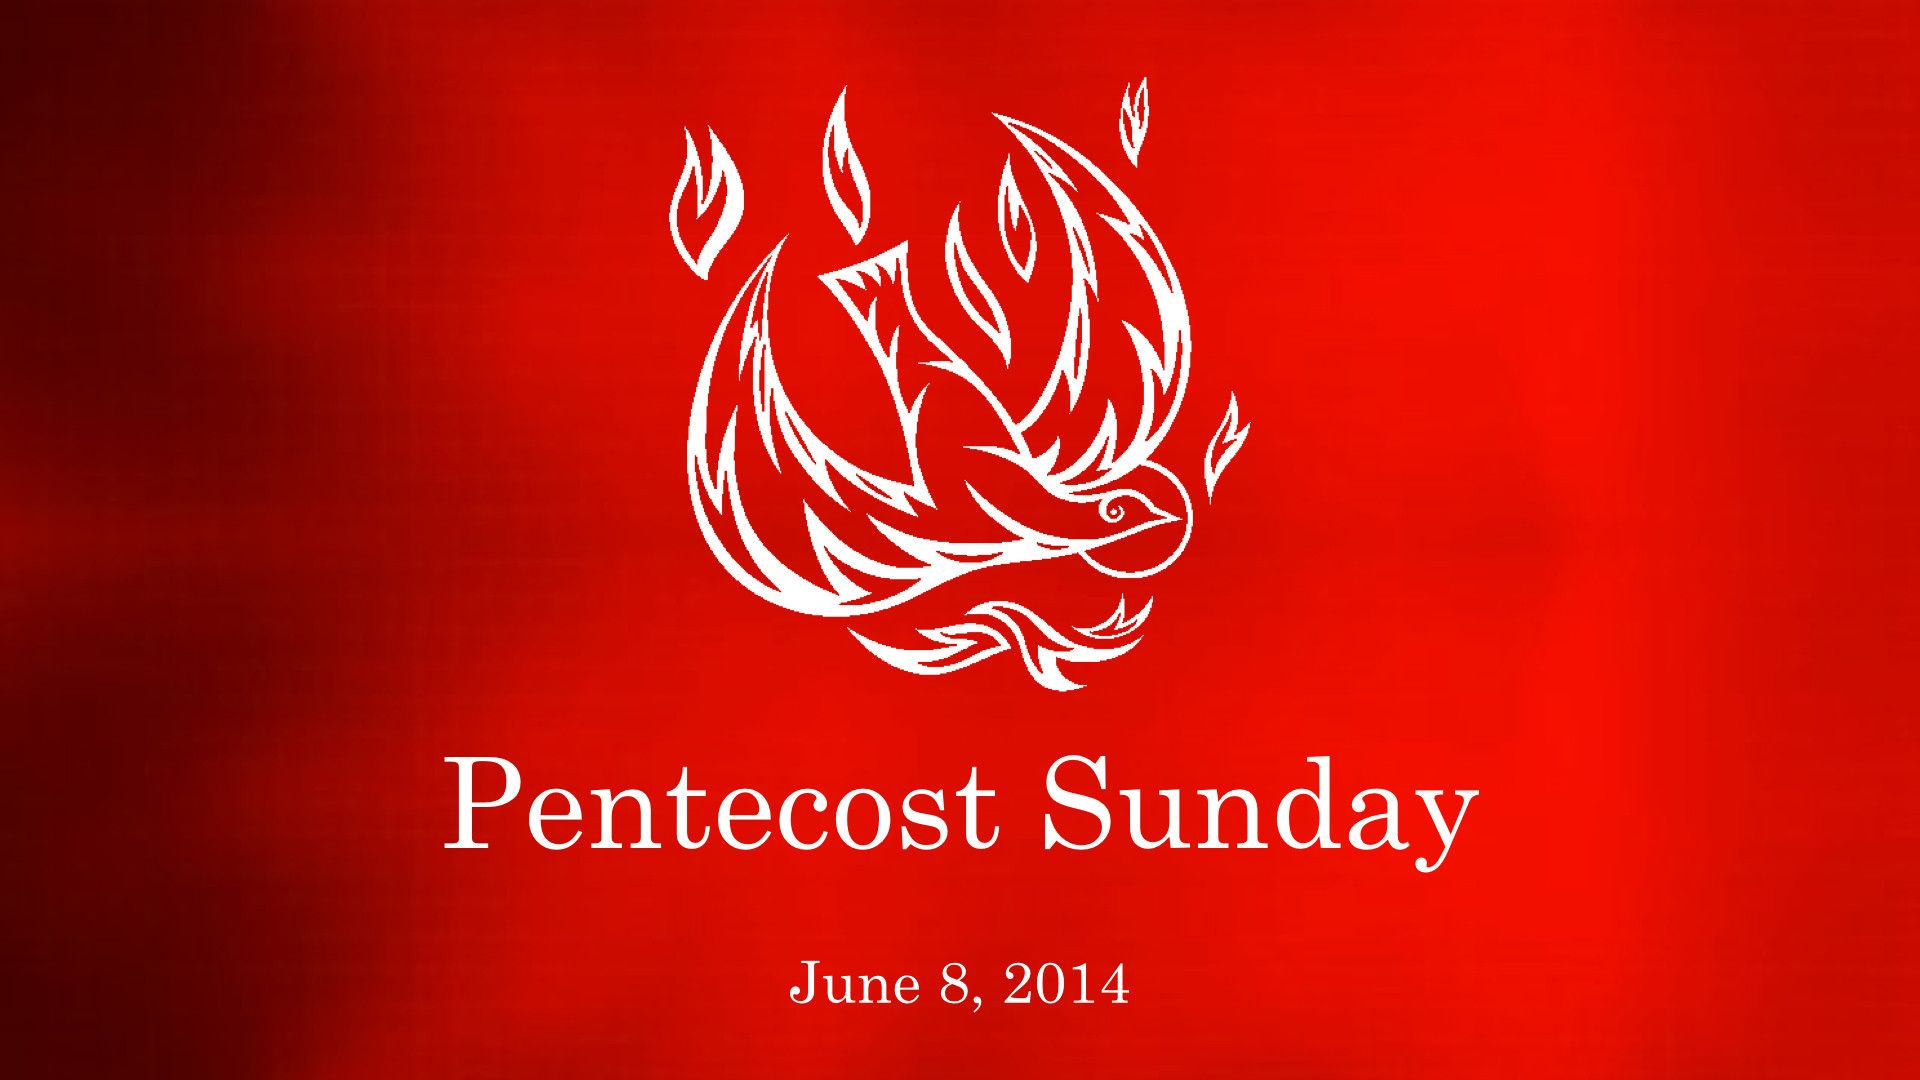 Reminder: Pentecost Sunday - June 4, 2017 - Wear Red